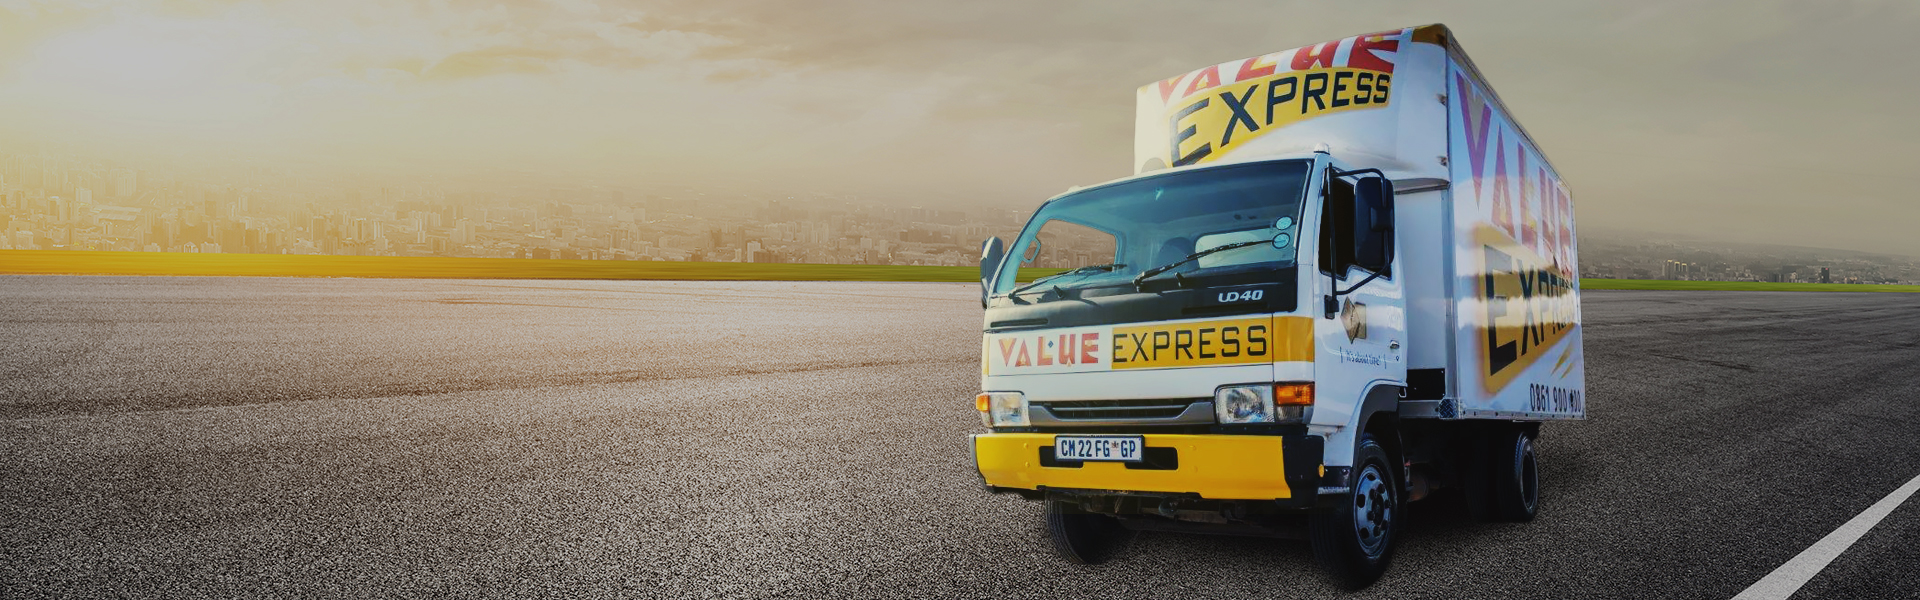 Value Express, Home, Value Express